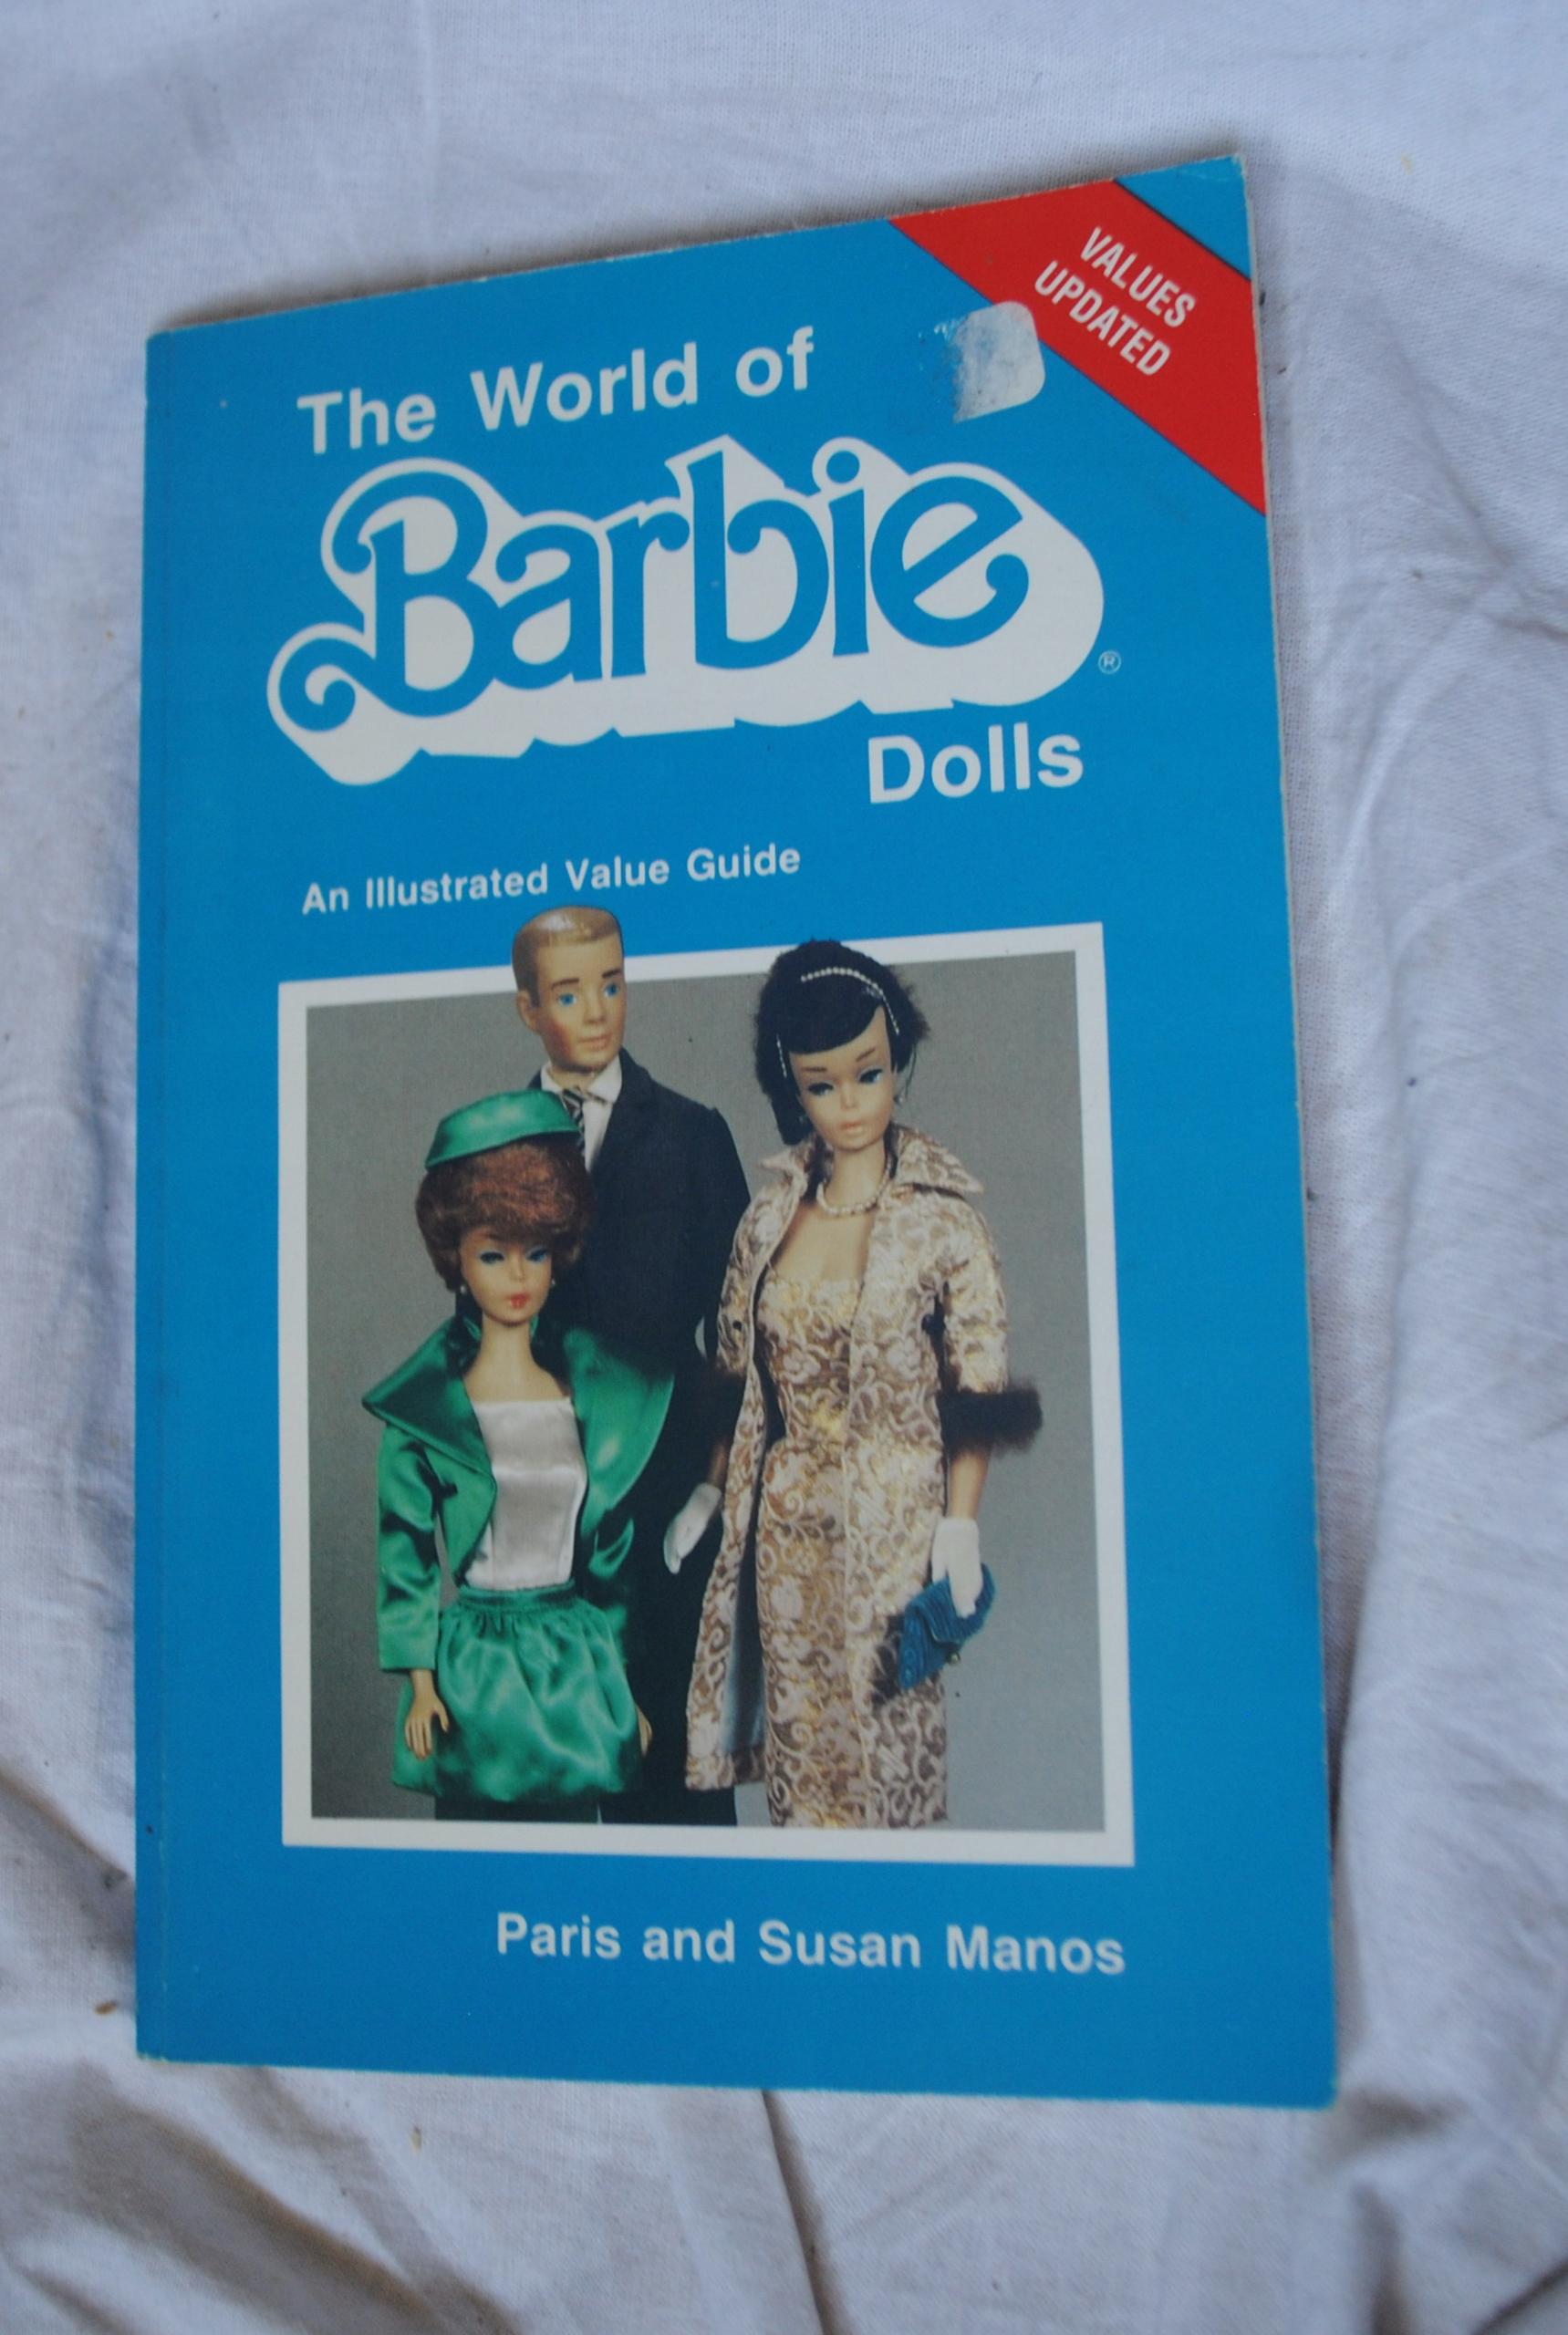 katalog THE WORLD OF BARBIE DOLLS - PARIS MANOS